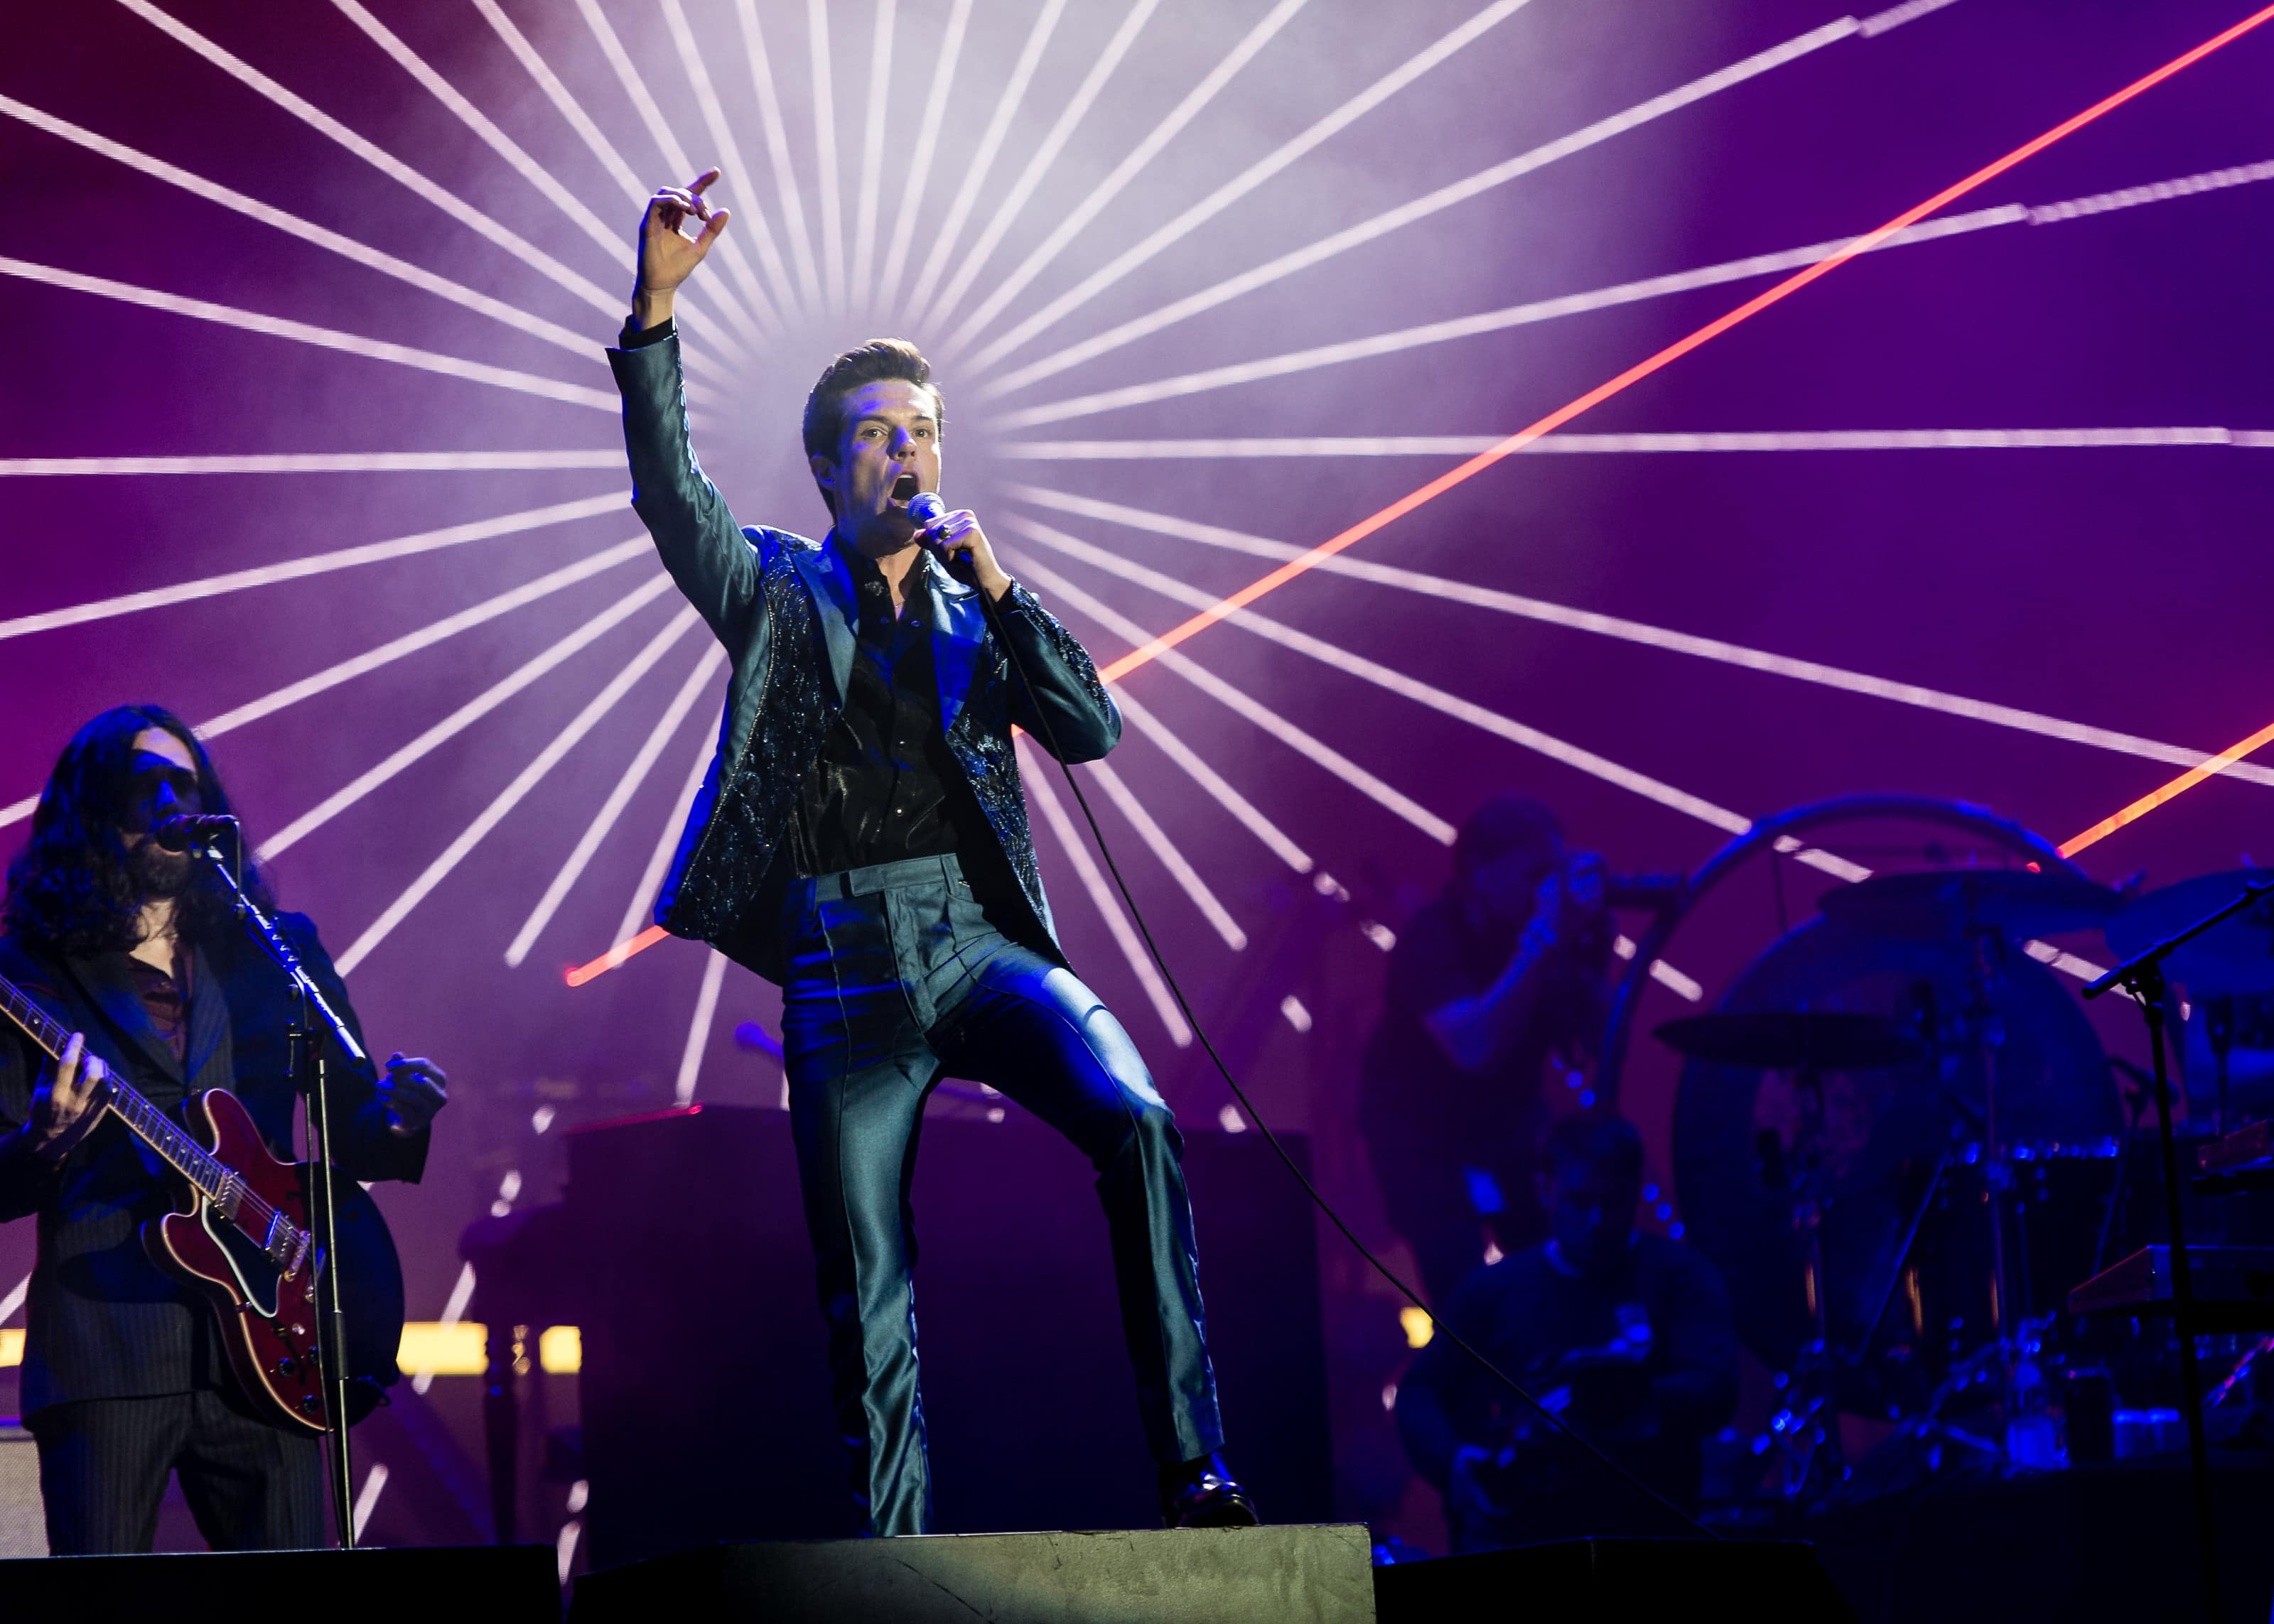 the-killers-glastonbury-festival-london-freelance-photographer-richard-isaac-3200